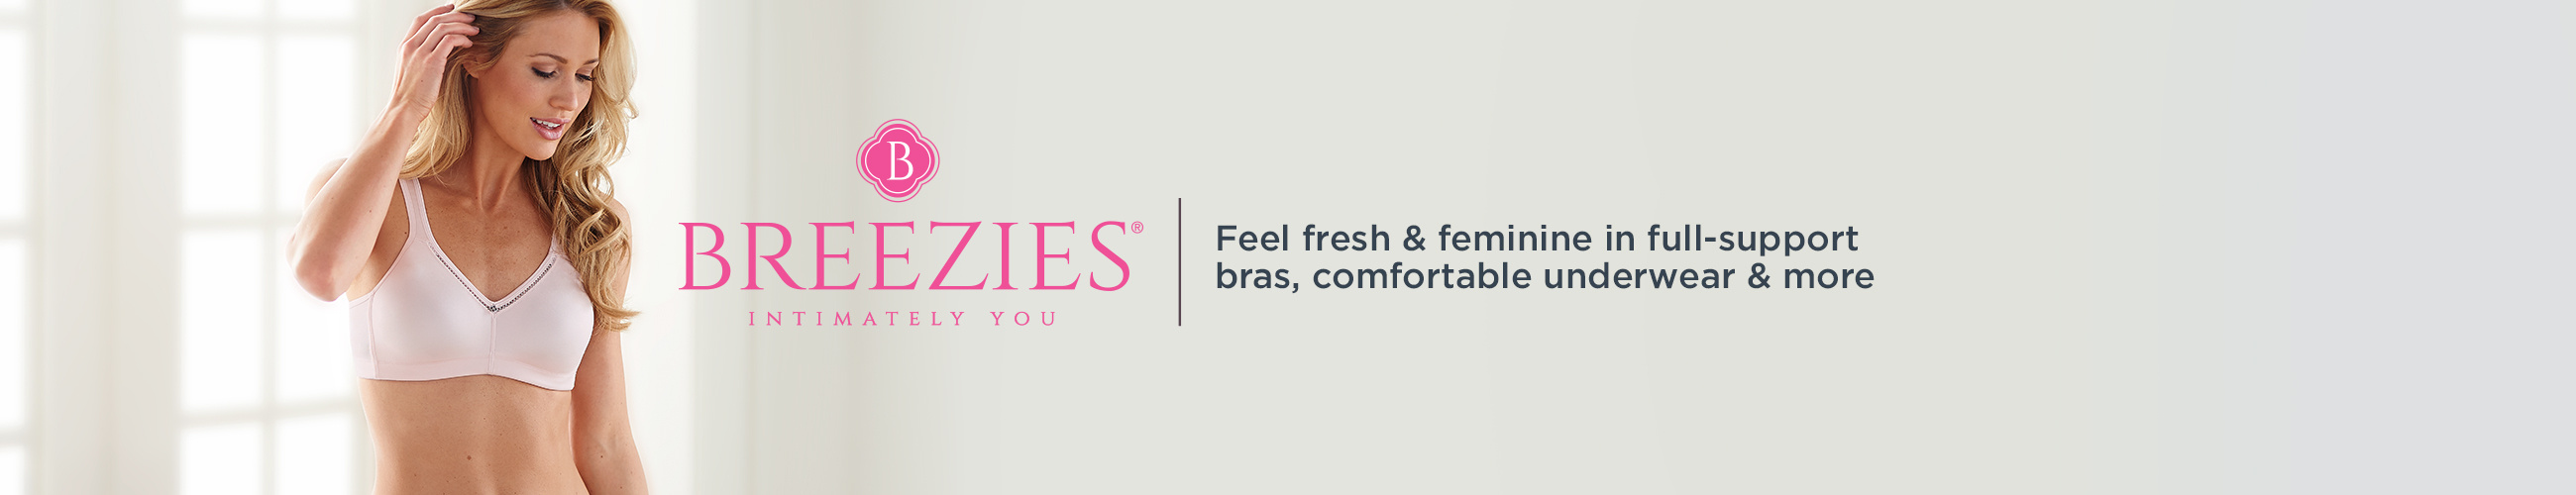 Breezies. Feel fresh & feminine in full-support bras, comfortable underwear & more